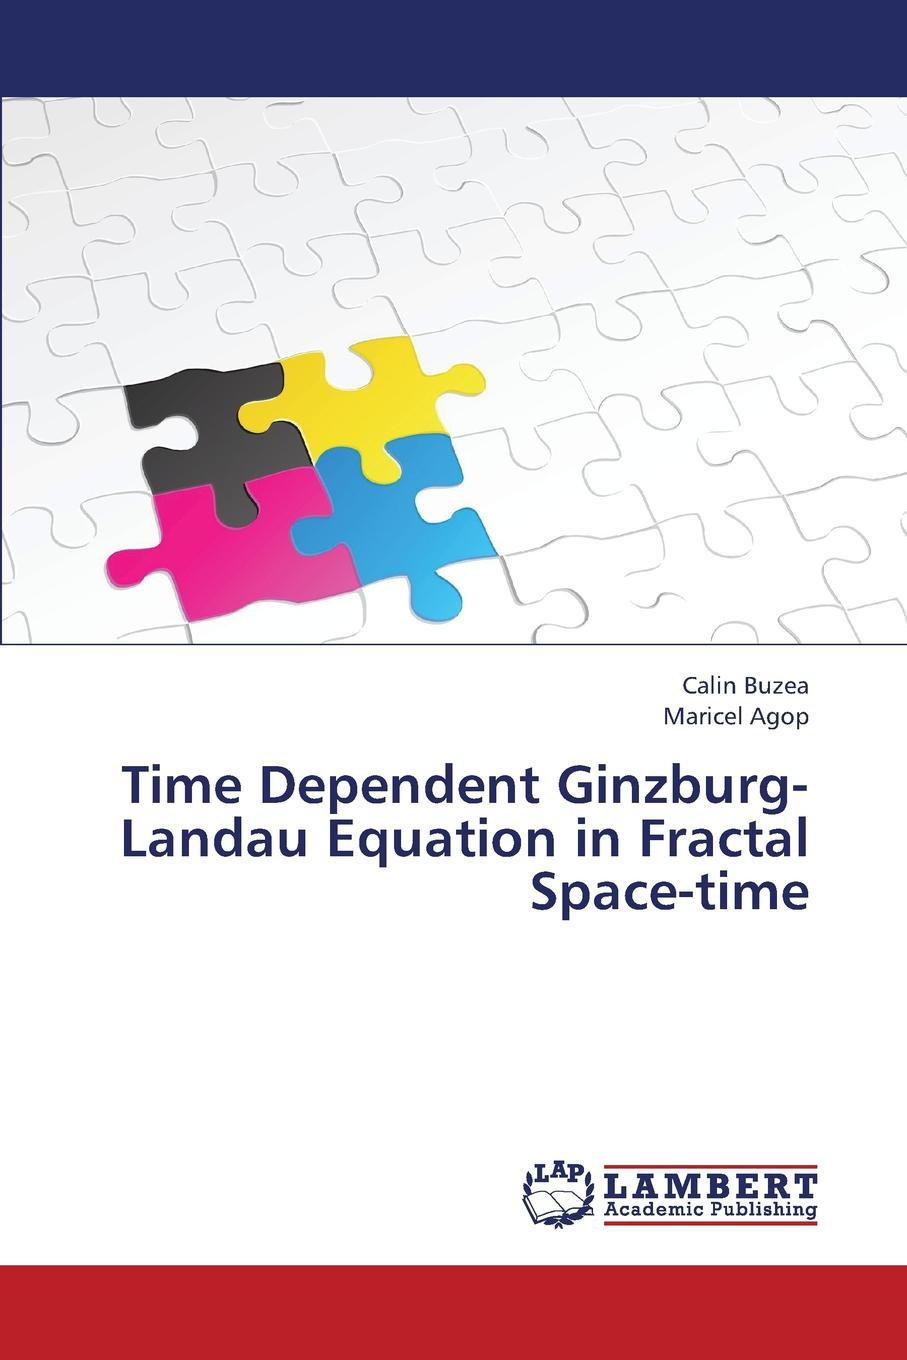 Buzea Calin, Agop Maricel Time Dependent Ginzburg-Landau Equation in Fractal Space-Time